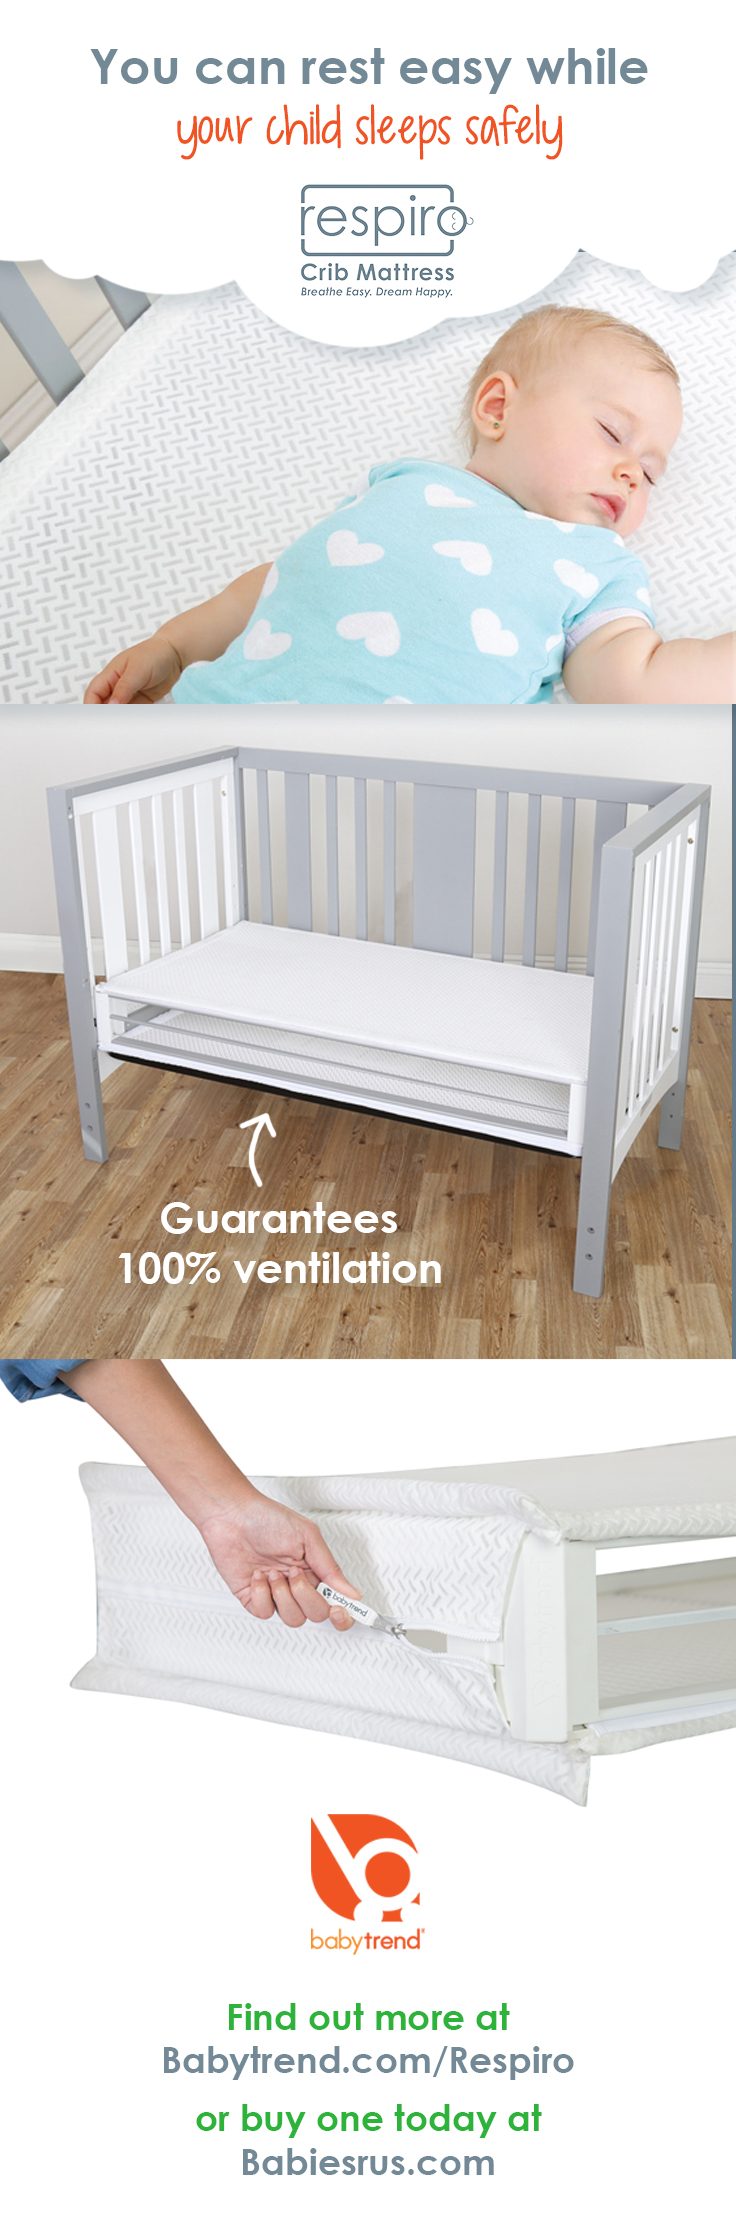 the baby trend respirotm crib mattress is completely breathable and